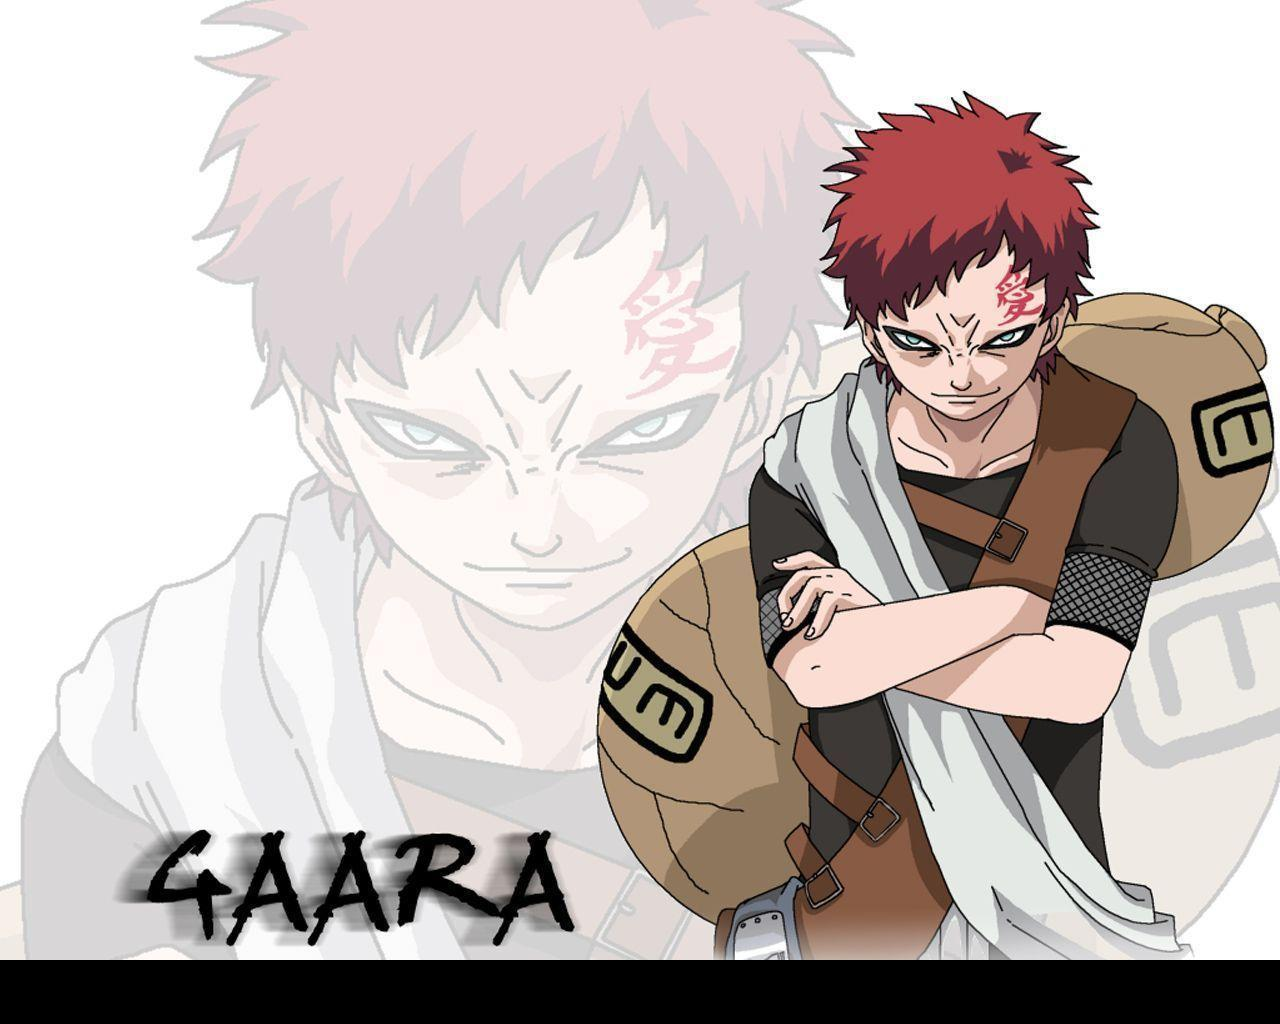 naruto and gaara wallpaper - photo #38